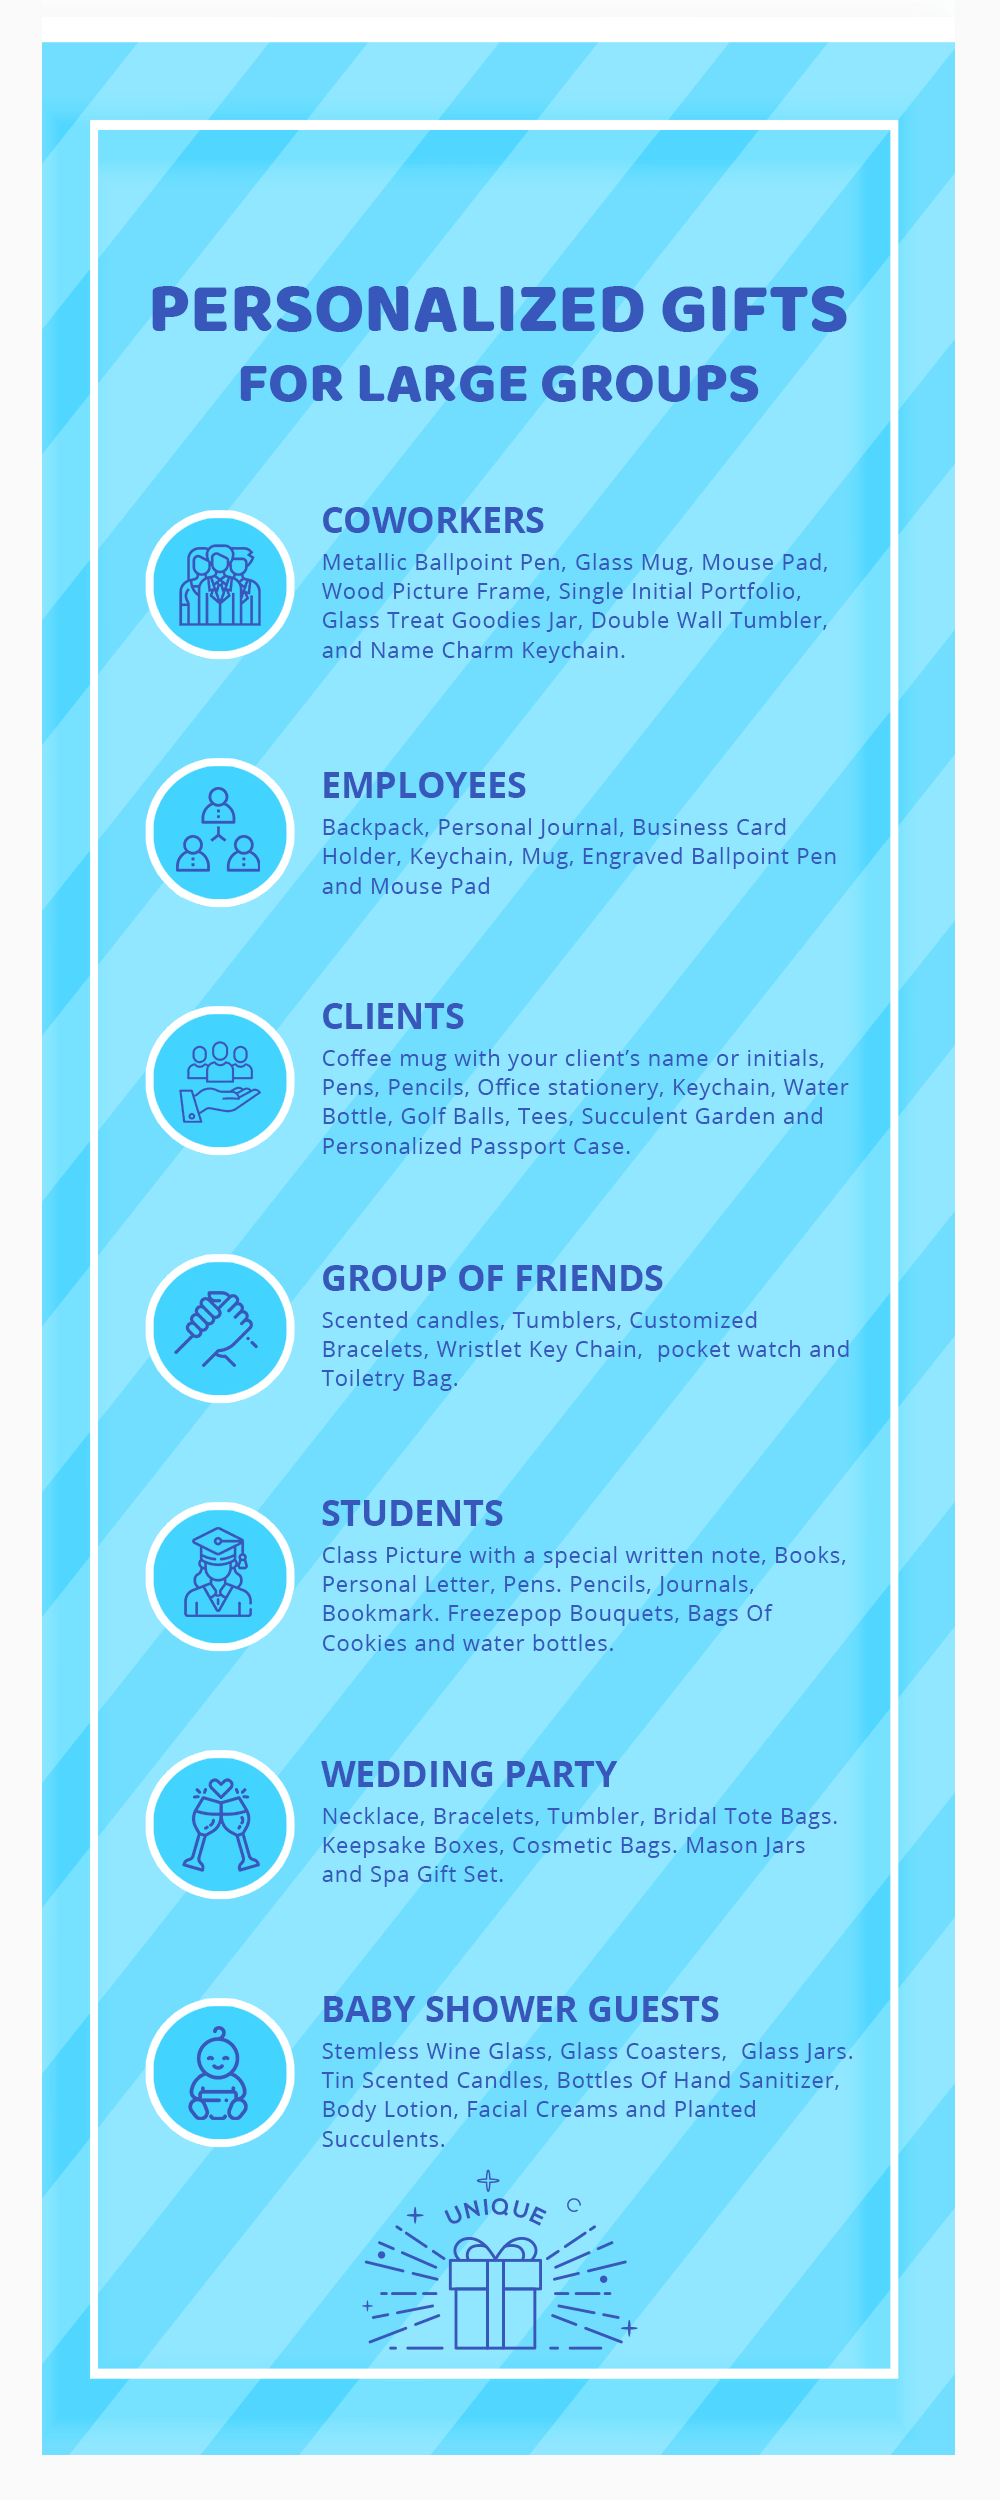 Infographic Personalized Gifts for Large Groups